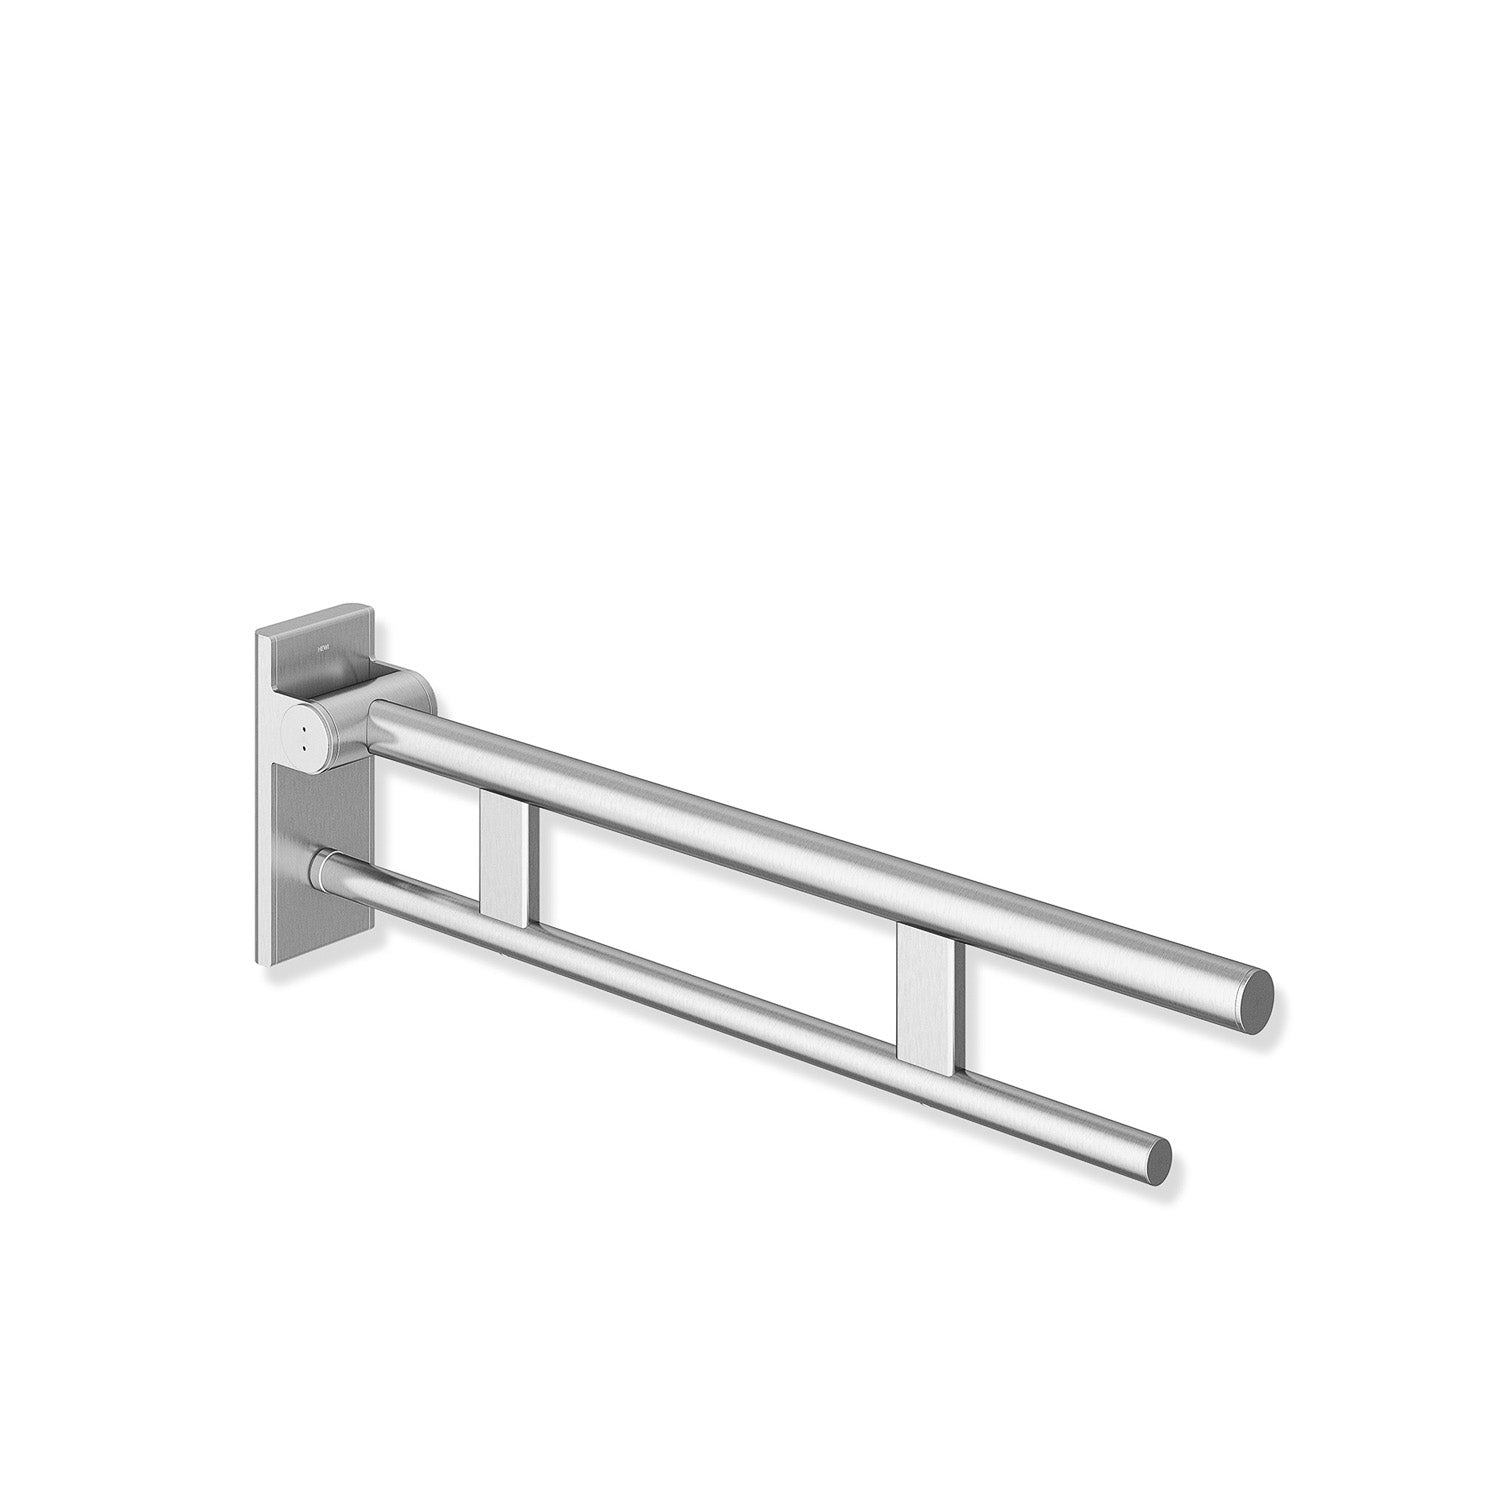 600mm Freestyle Removable Hinged Grab Rail Set with a satin steel finish on a white background